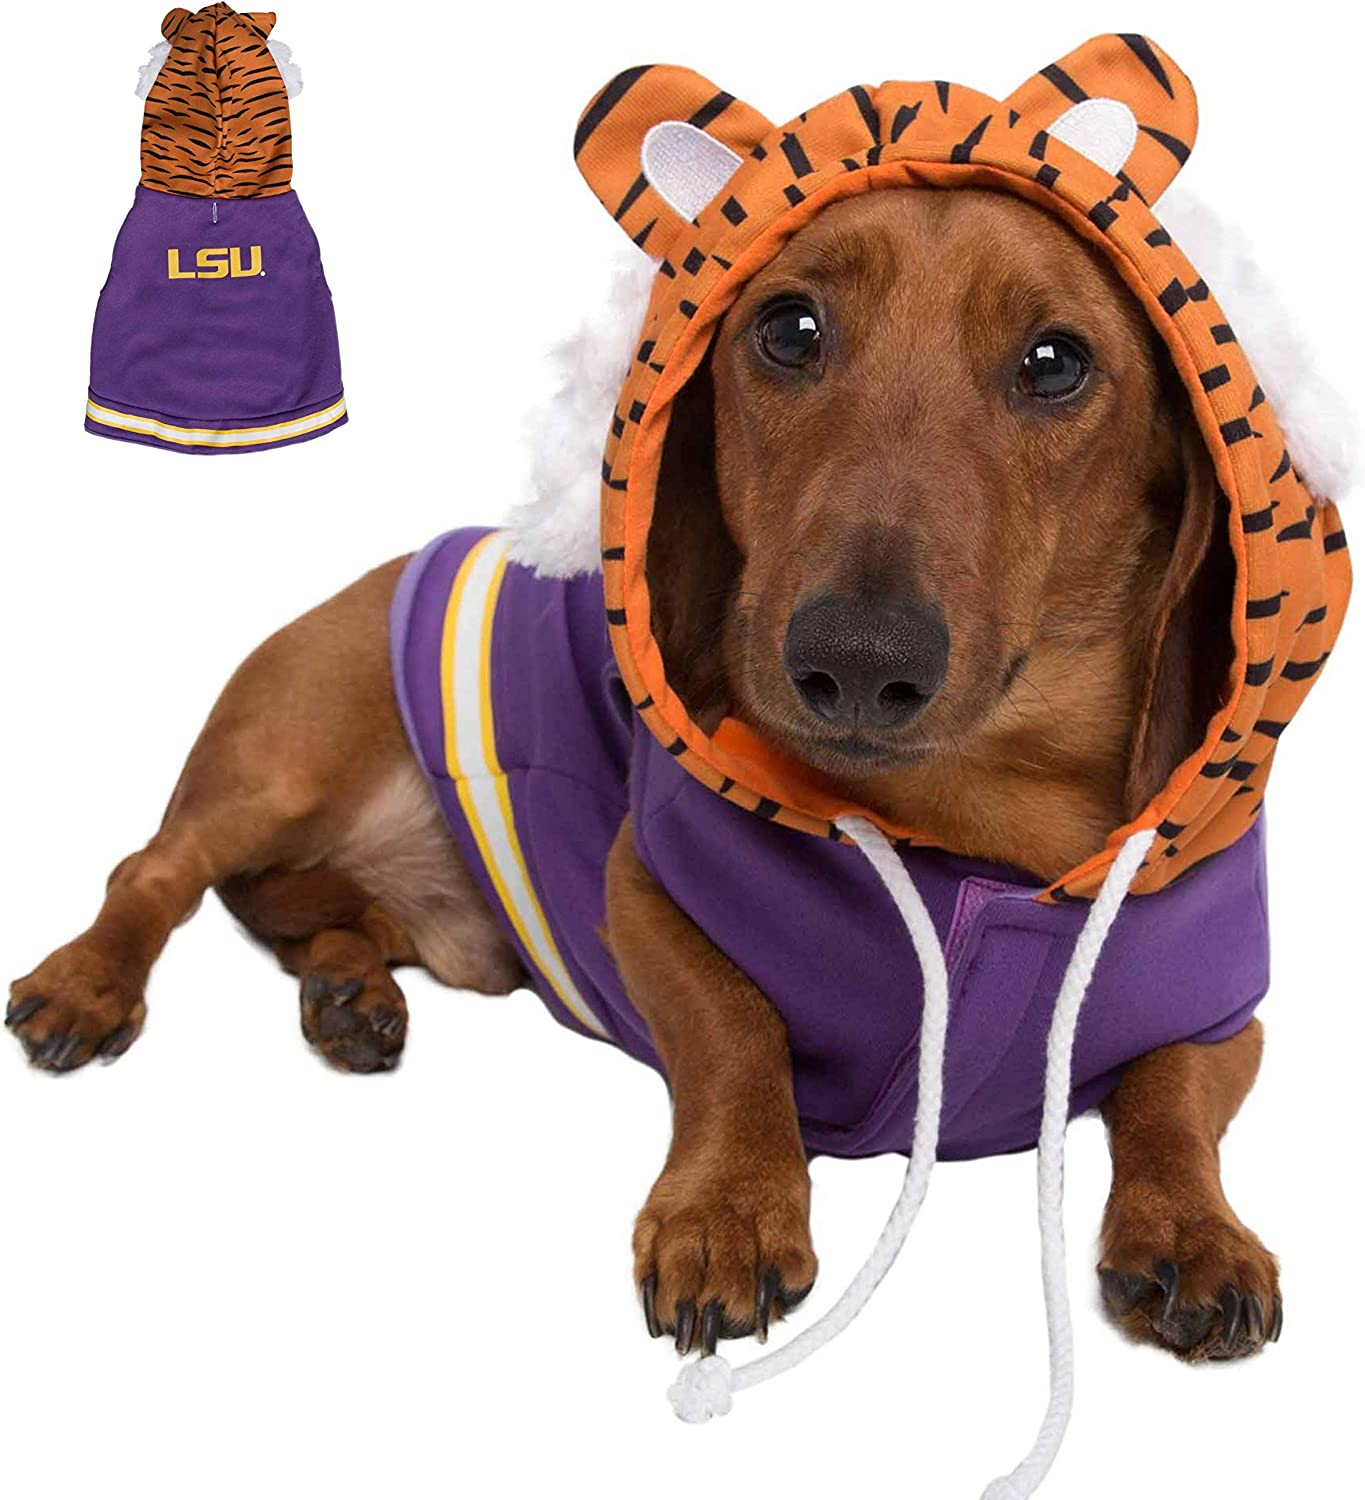 LSU Pet Jersey Dog Costume | Mike The Tiger Mascot Football Costumes for Dogs & Cats | Small, Medium, Large & XL Pets